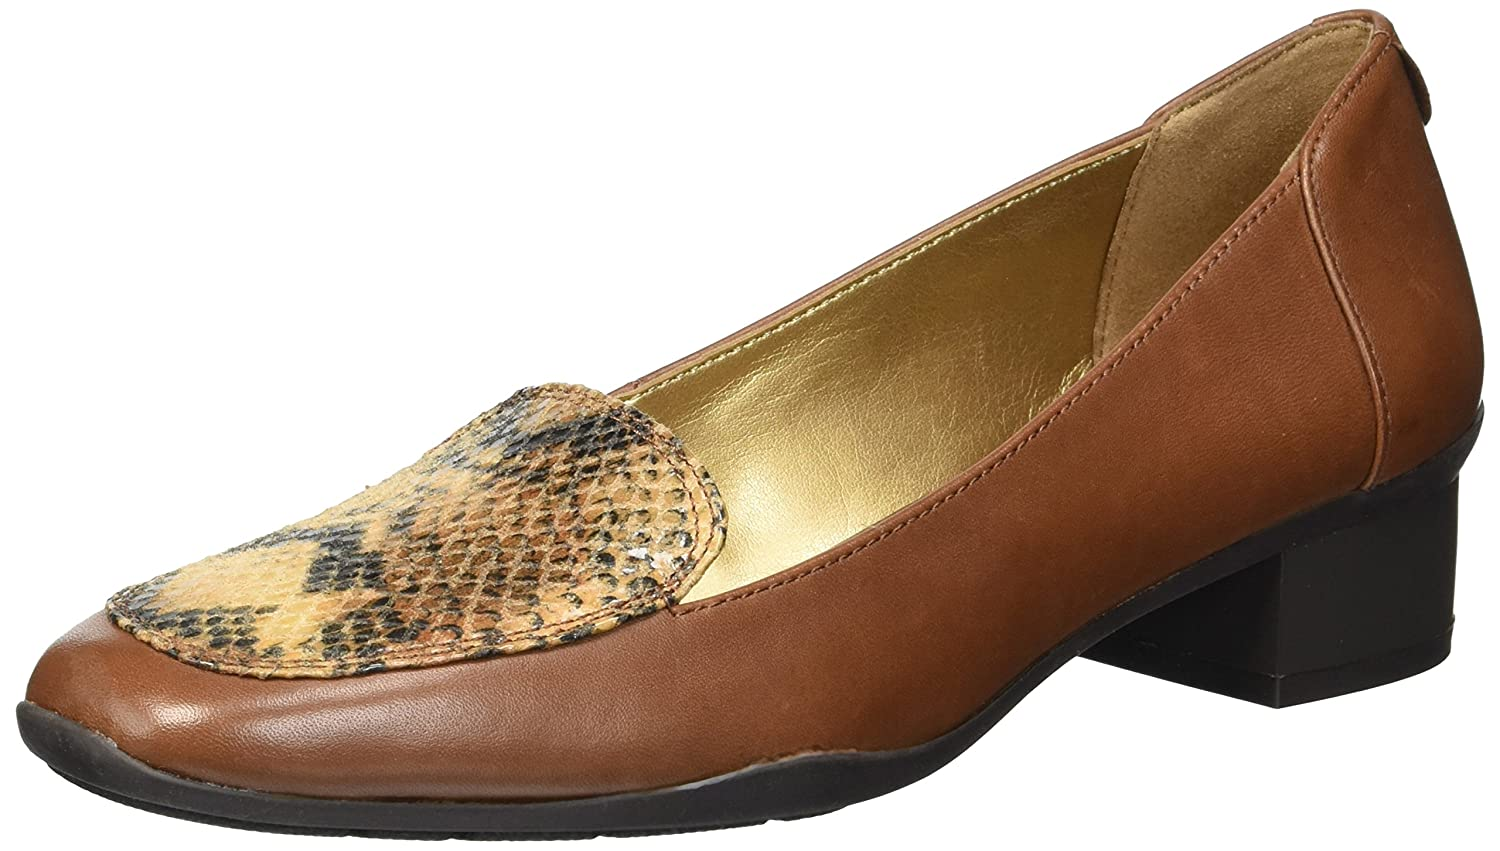 Anne Klein Women's Daneen Leather Pump B077DXDGYY 10.5 B(M) US|Dakr Cognac Leather